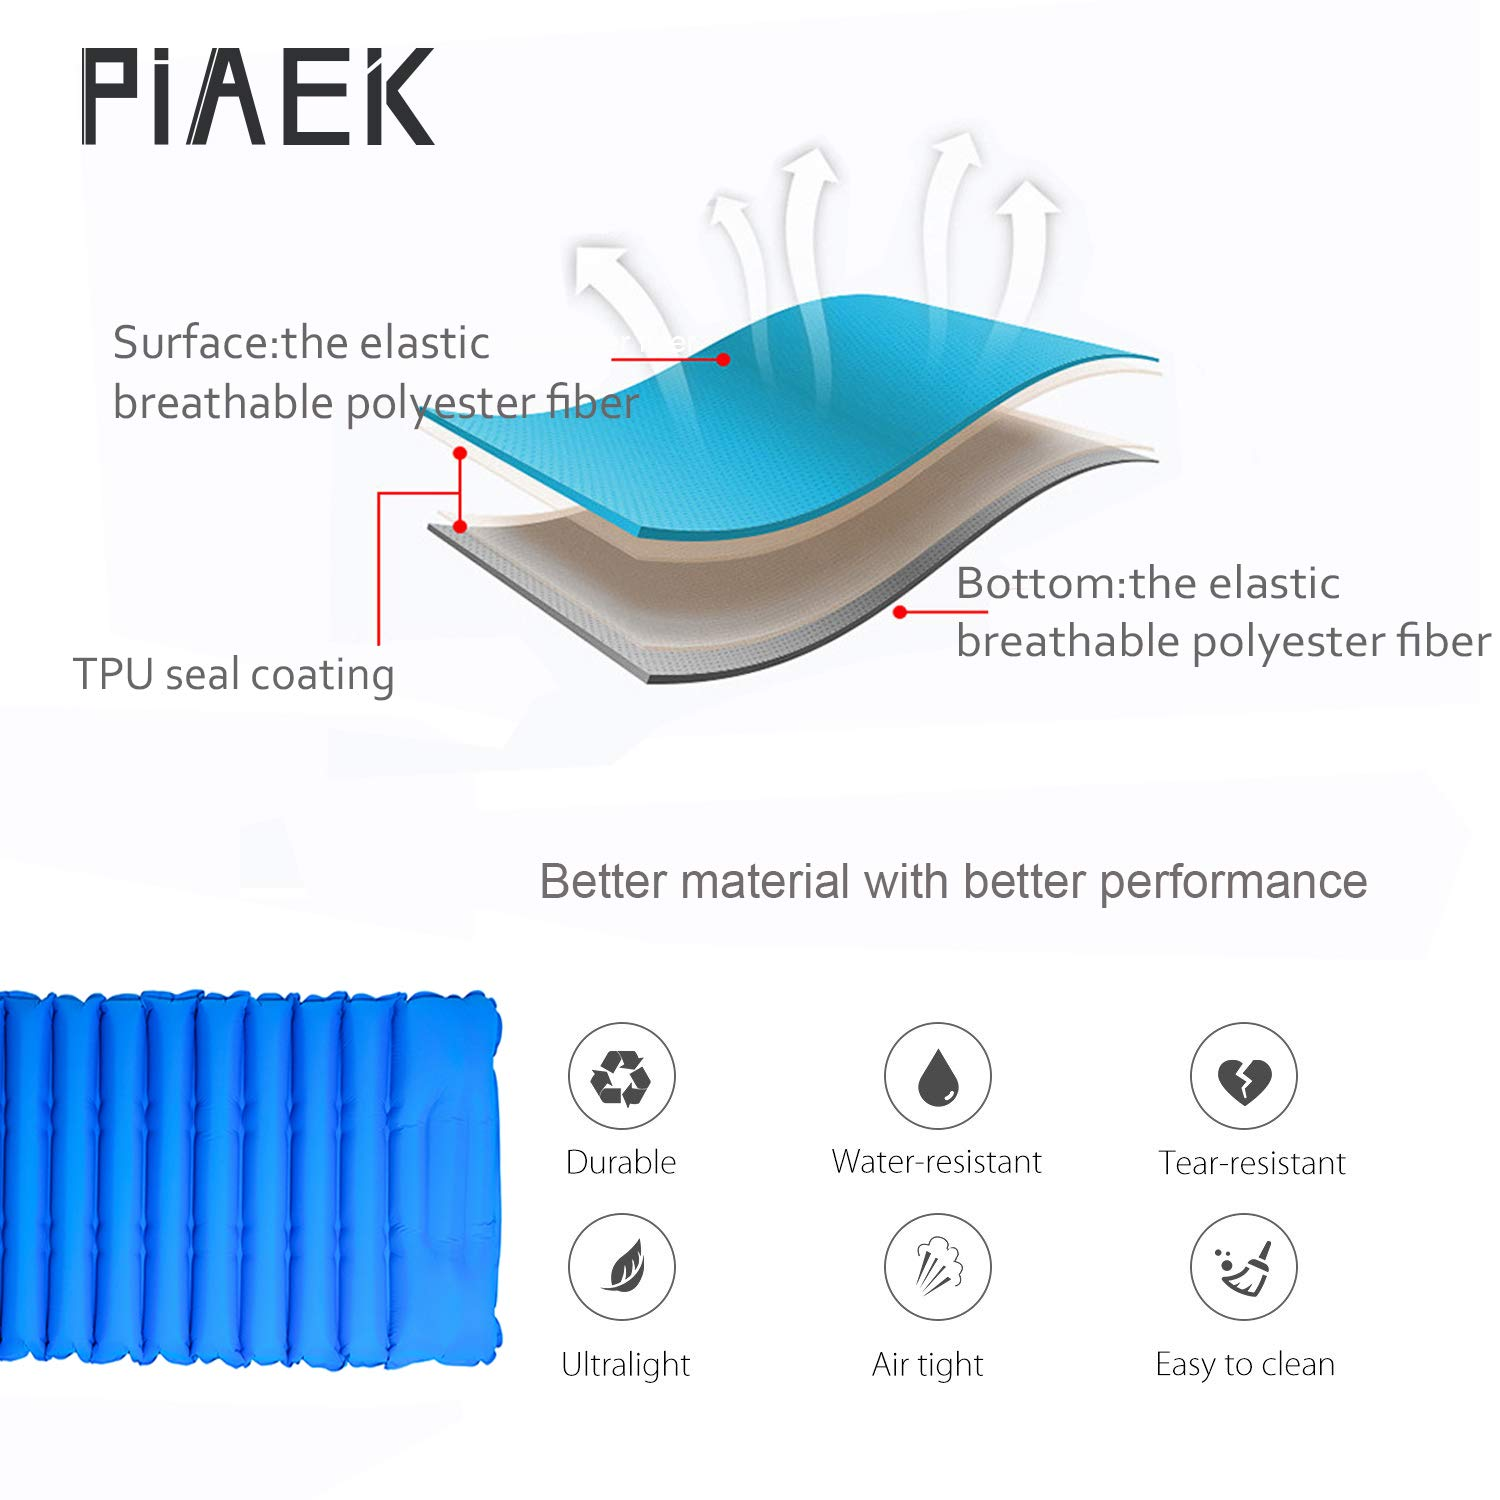 PiAEK Self Inflating Camping Mat Ultralight Inflatable Camping Mattress with Build-in Pillow,Inflatable Pool Pad,Roll Mattress for Camping,Hiking,Traveling 190x56x9cm